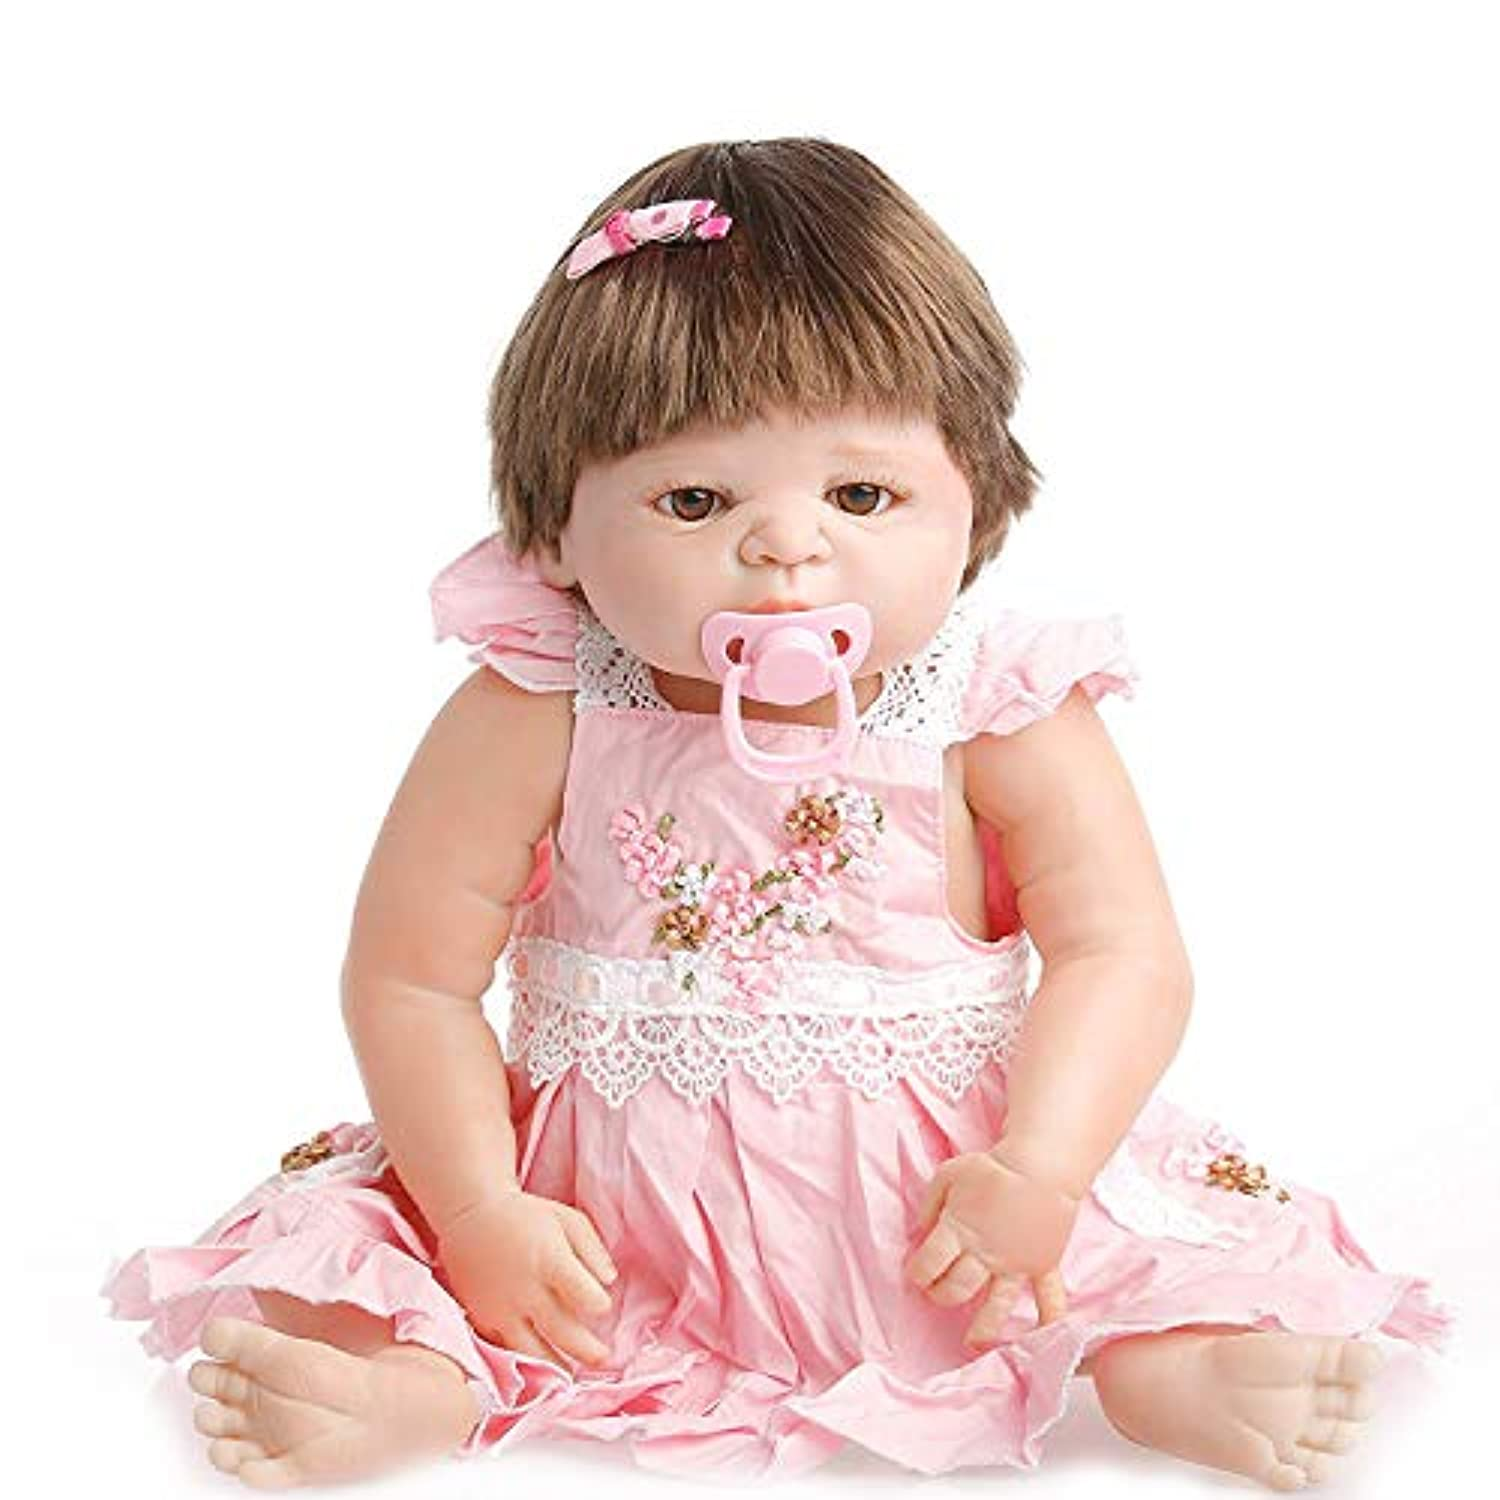 NPK collection Reborn Baby Doll, Vinyl Silicone 22 inch 55 cm Babies Doll, Lifelike express Toys Girl for Children Gift can take a shower all Vinyl Silicone Baby by NPK collection